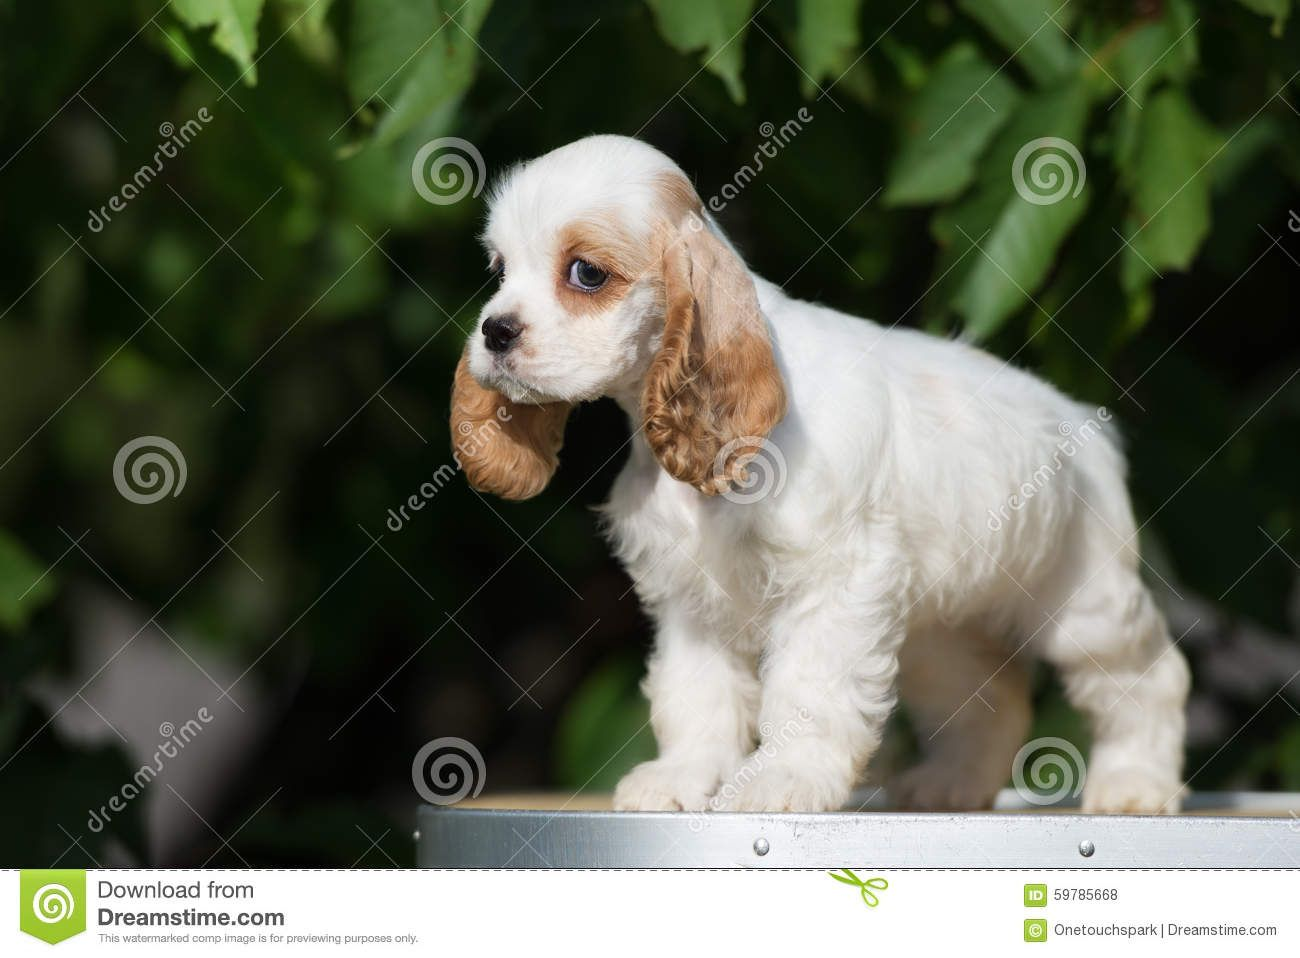 White And Red American Cocker Spaniel Puppy Download From Over 68 Million High Quality Stock Photos I Cocker Spaniel Puppies American Cocker Spaniel Puppies